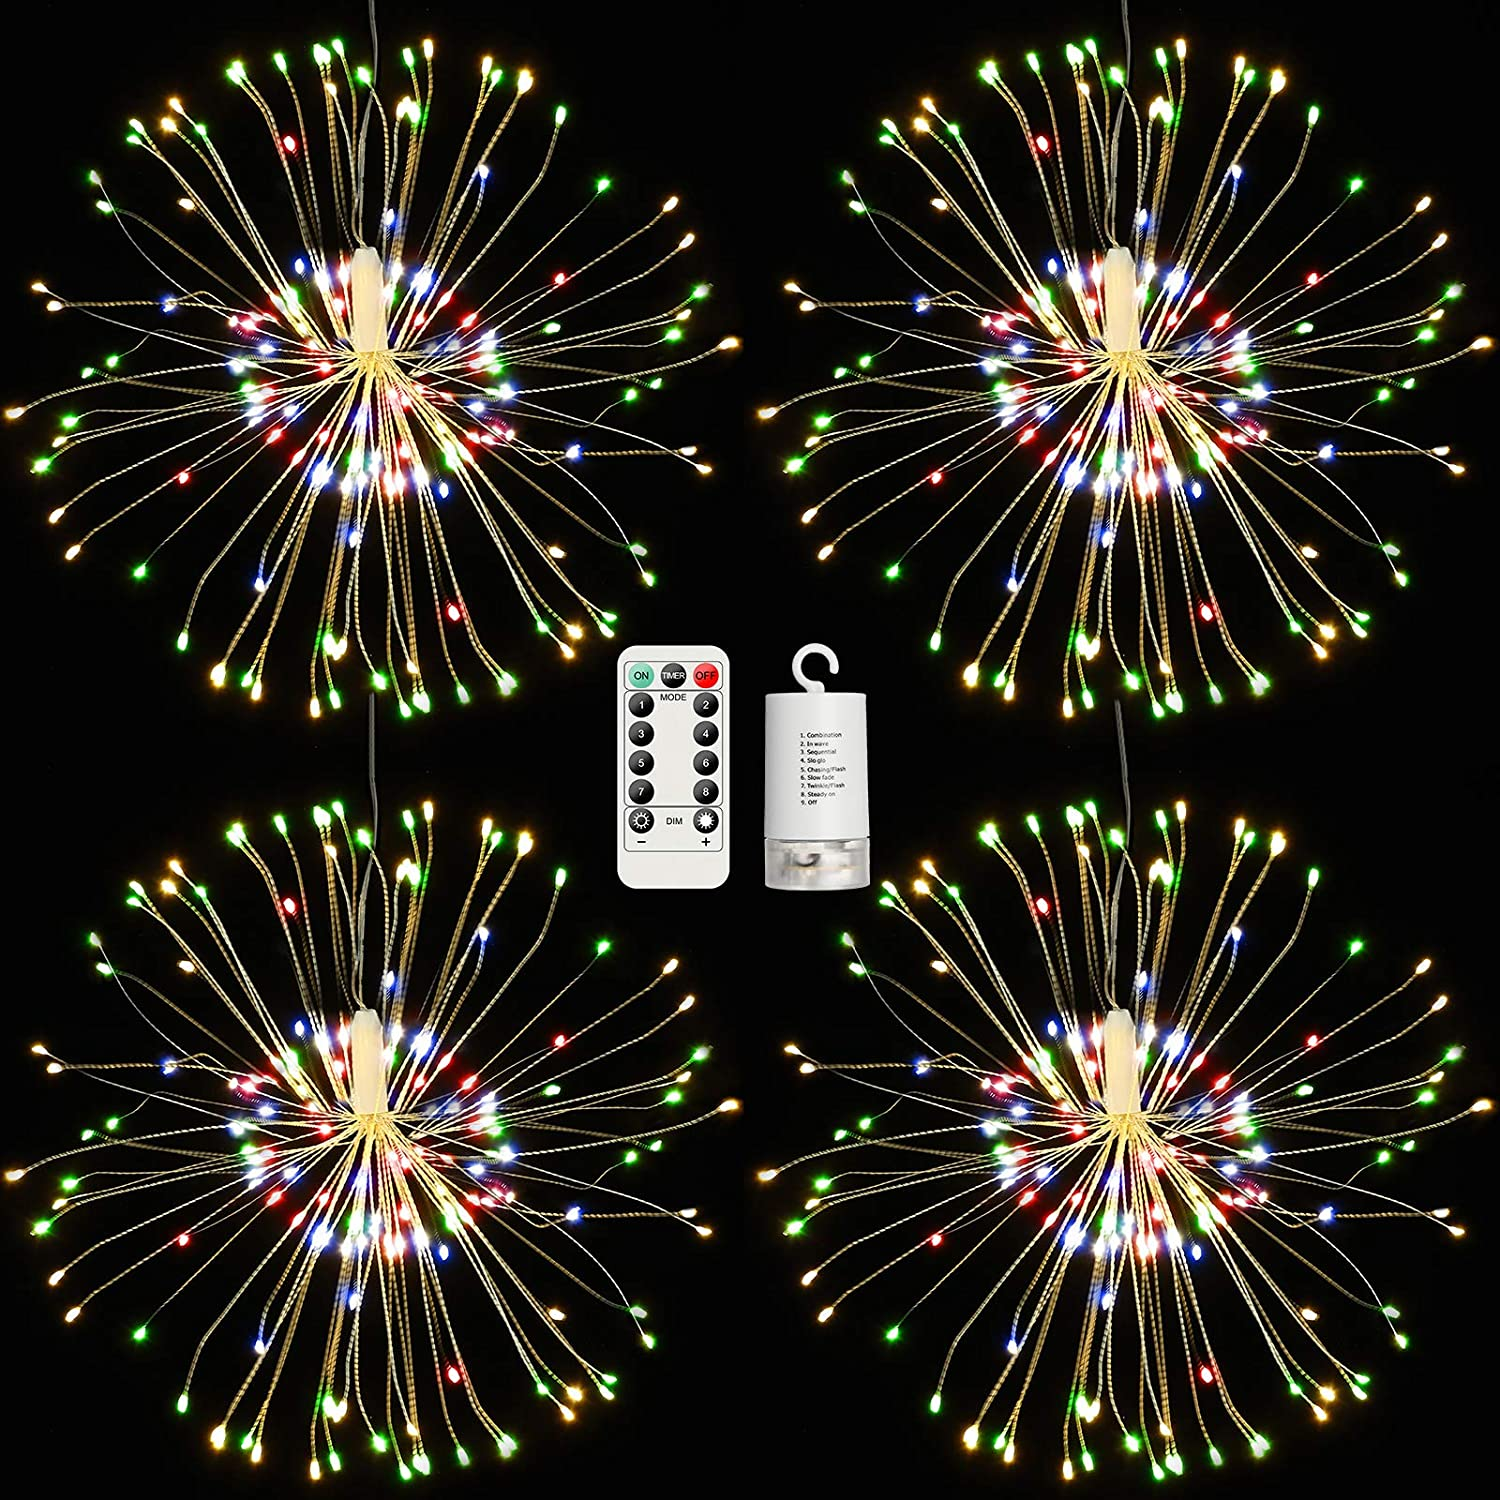 4 Pack Firework Lights, 120 LED Outdoor Home Decor Battery Powered 8 Modes Dimmable Multicolor Copper Wire Starburst String Lights with Remote Control for Garden Patio Yard Pathway Lawn Party